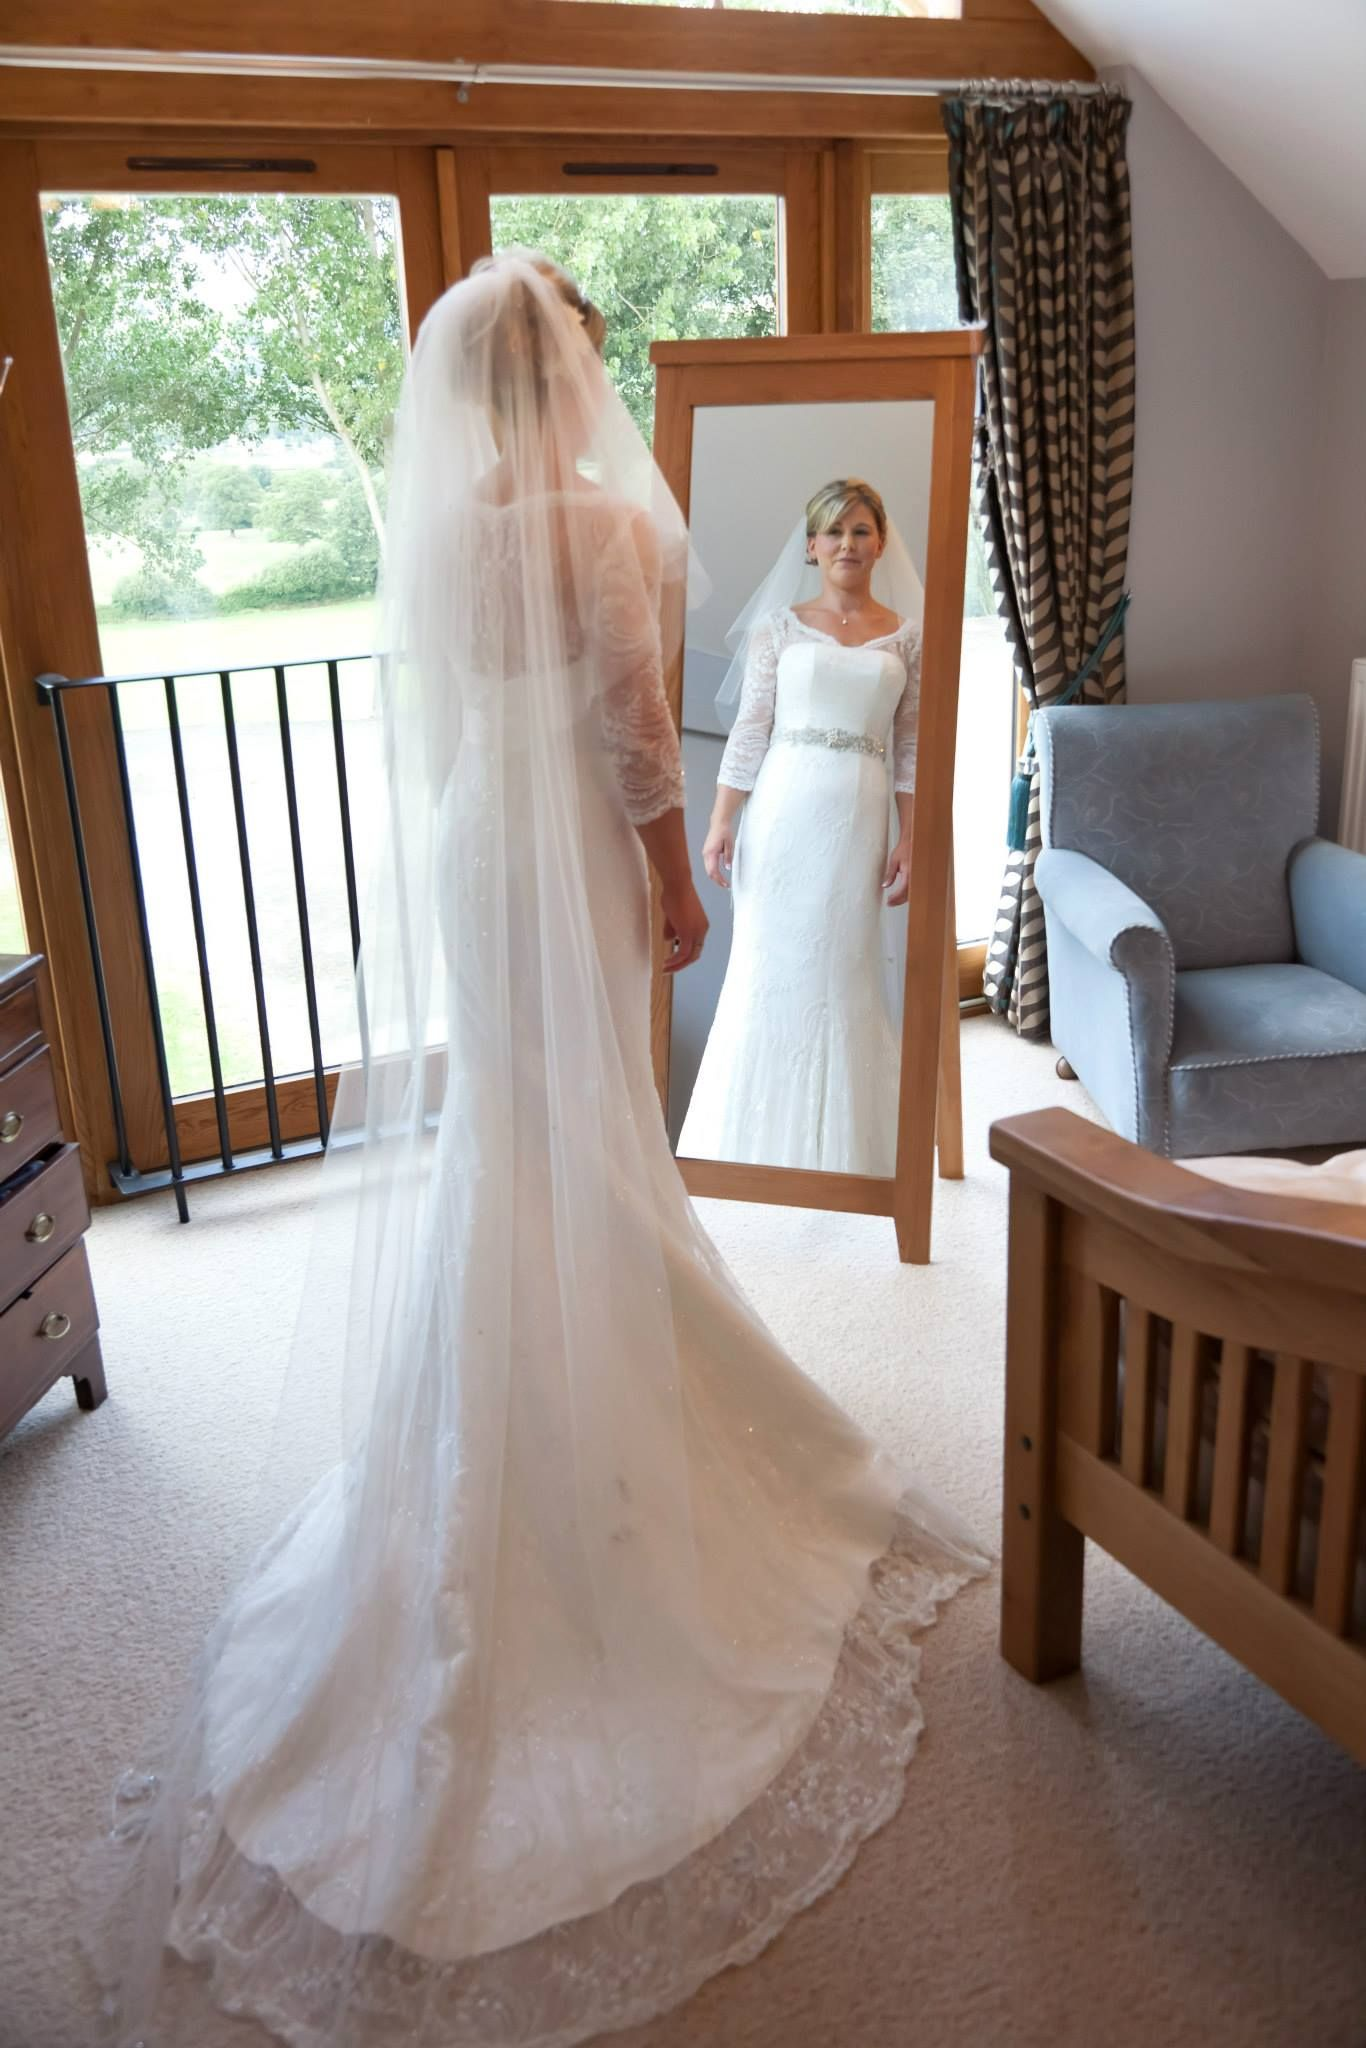 Claire Mischevani Bespoke Wedding Gown Made To Measure Hand Beaded Lace Dress Custom Freshwater Pearl Belt Weddings Bridal Brides